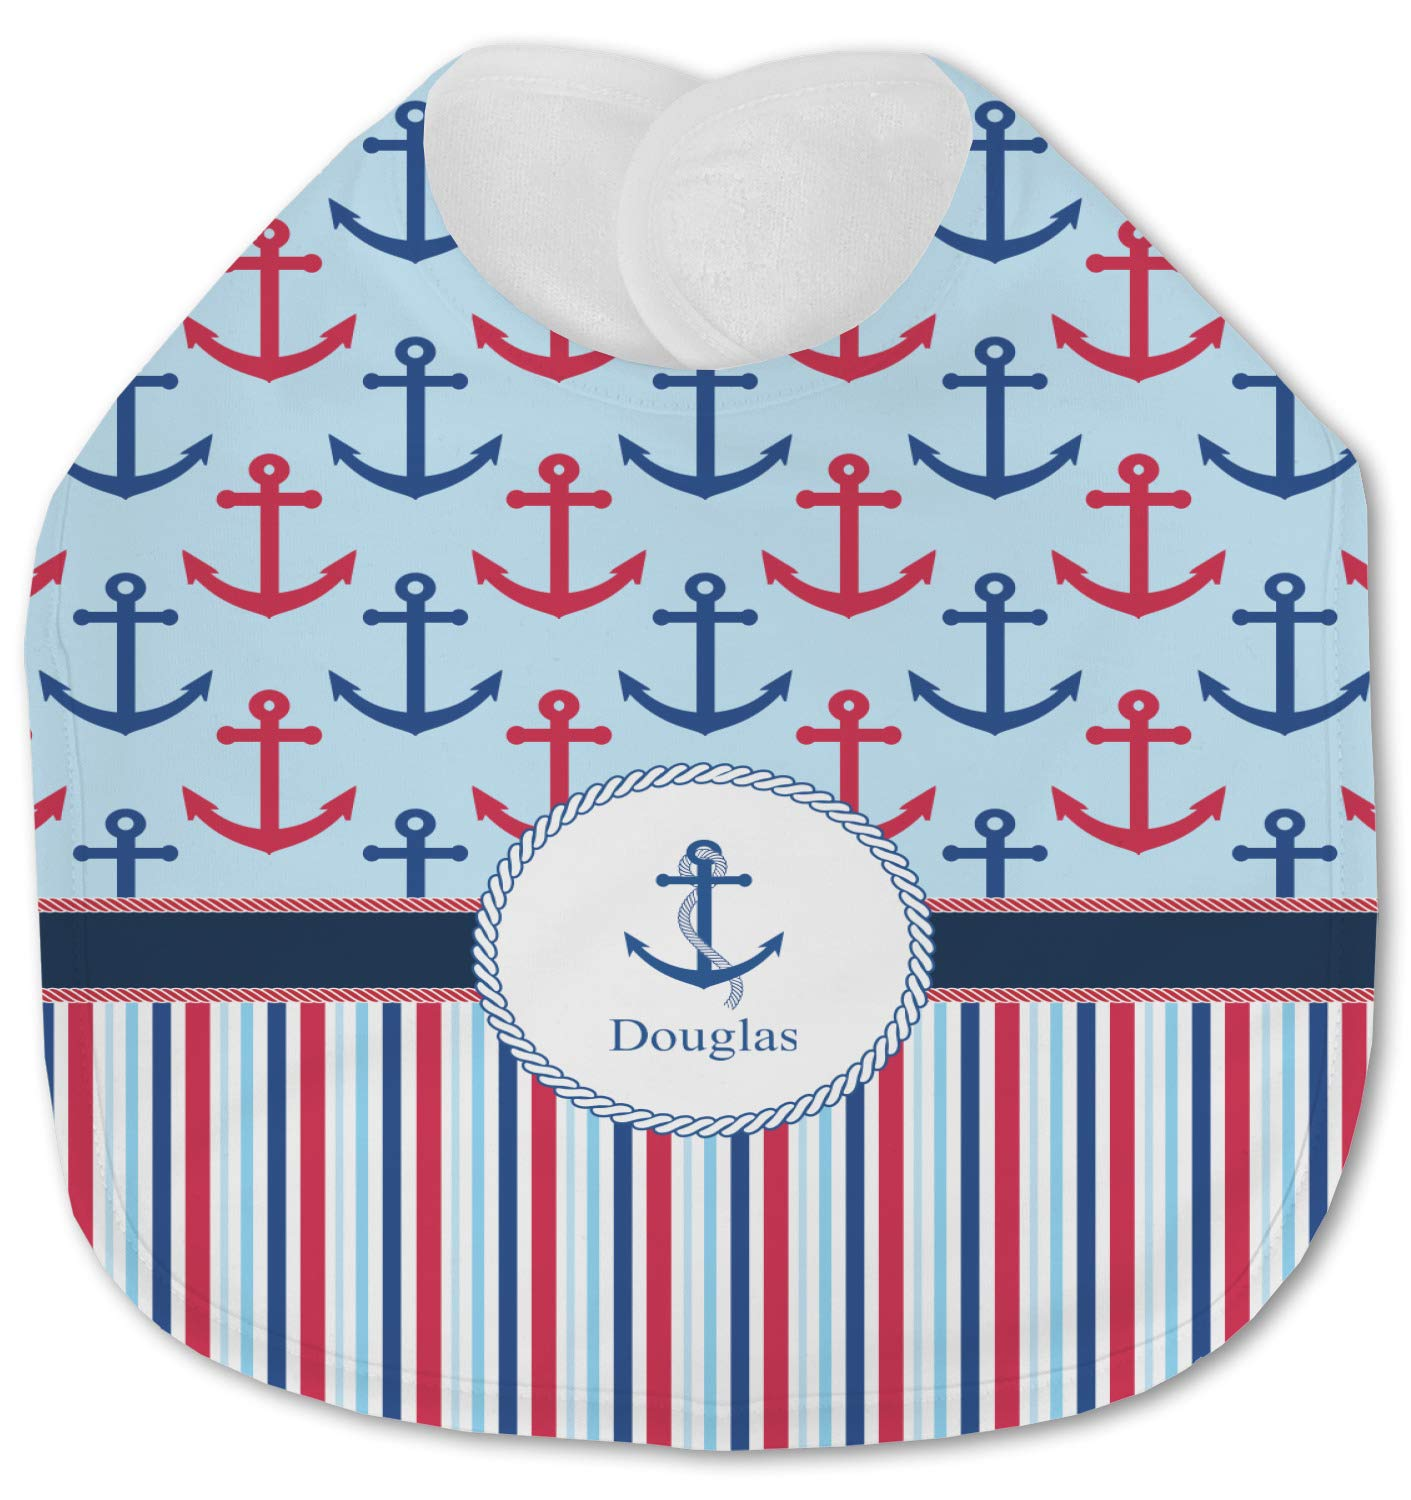 Sales Anchors Stripes Jersey 4 years warranty Knit Baby Text w or Bib Name